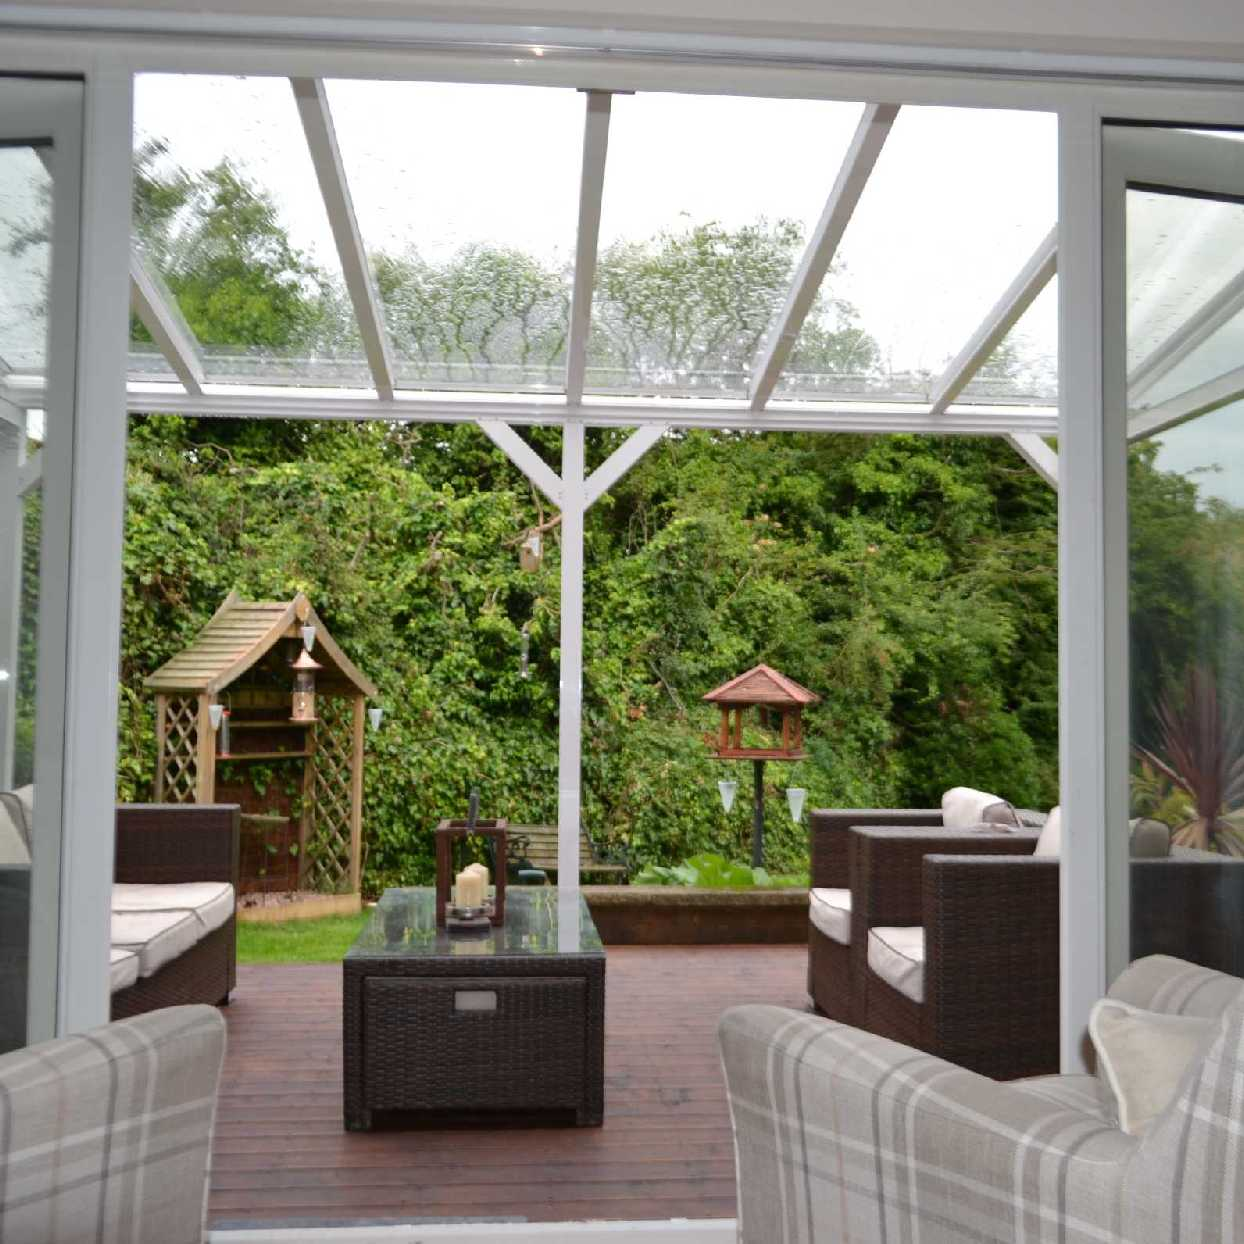 Great selection of Omega Smart White Lean-To Canopy UNGLAZED for 6mm Glazing - 6.3m (W) x 1.5m (P), (4) Supporting Posts